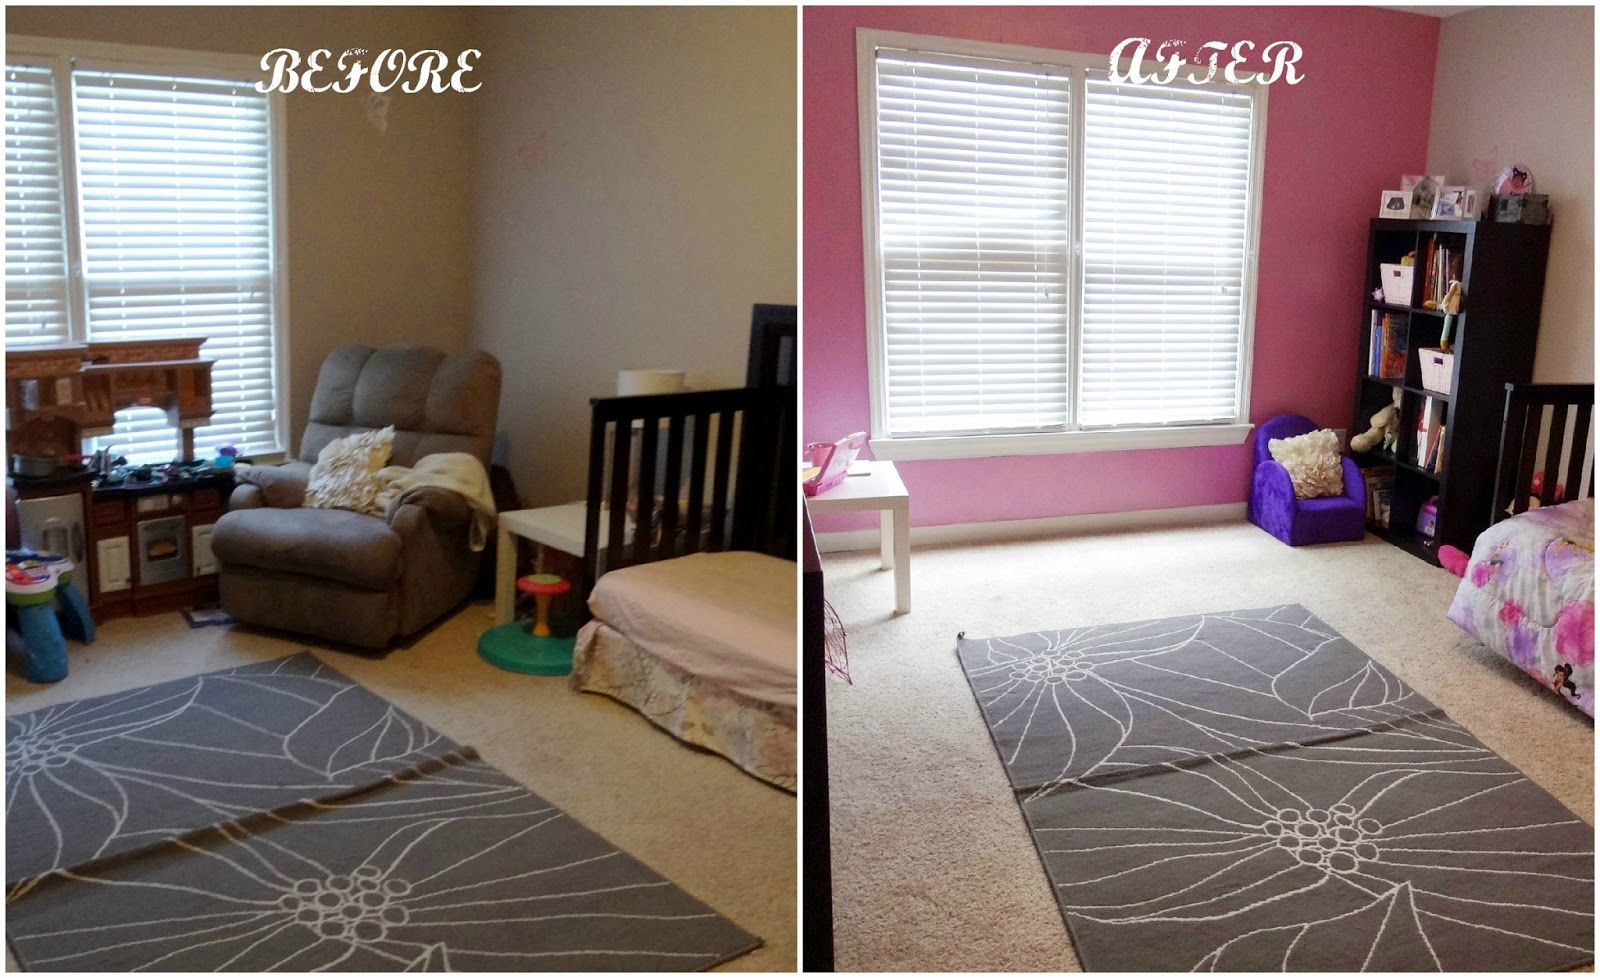 p 39 s bedroom makeover party disneypaintmom before after baby shopaholic. Black Bedroom Furniture Sets. Home Design Ideas